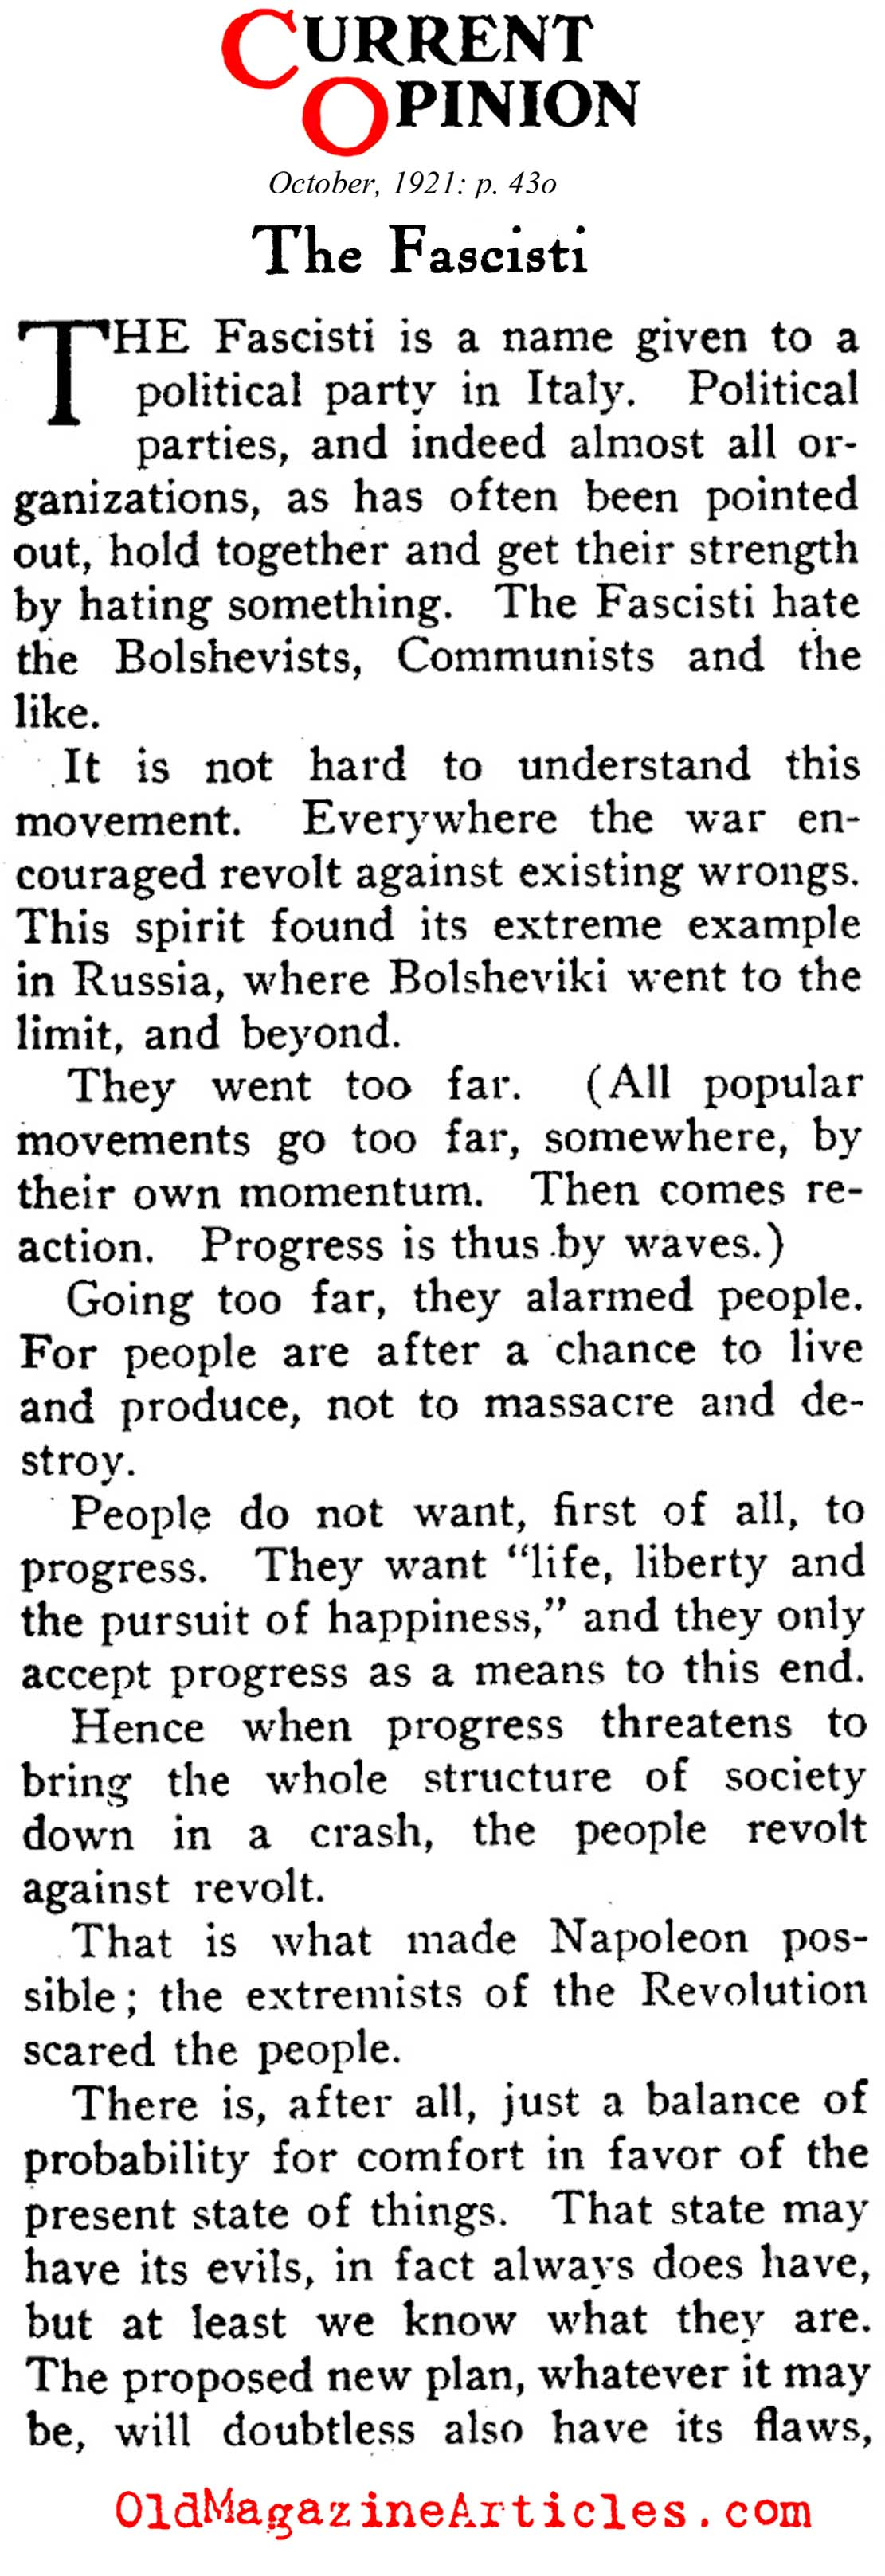 The Fascisti (Current Opinion, 1921)